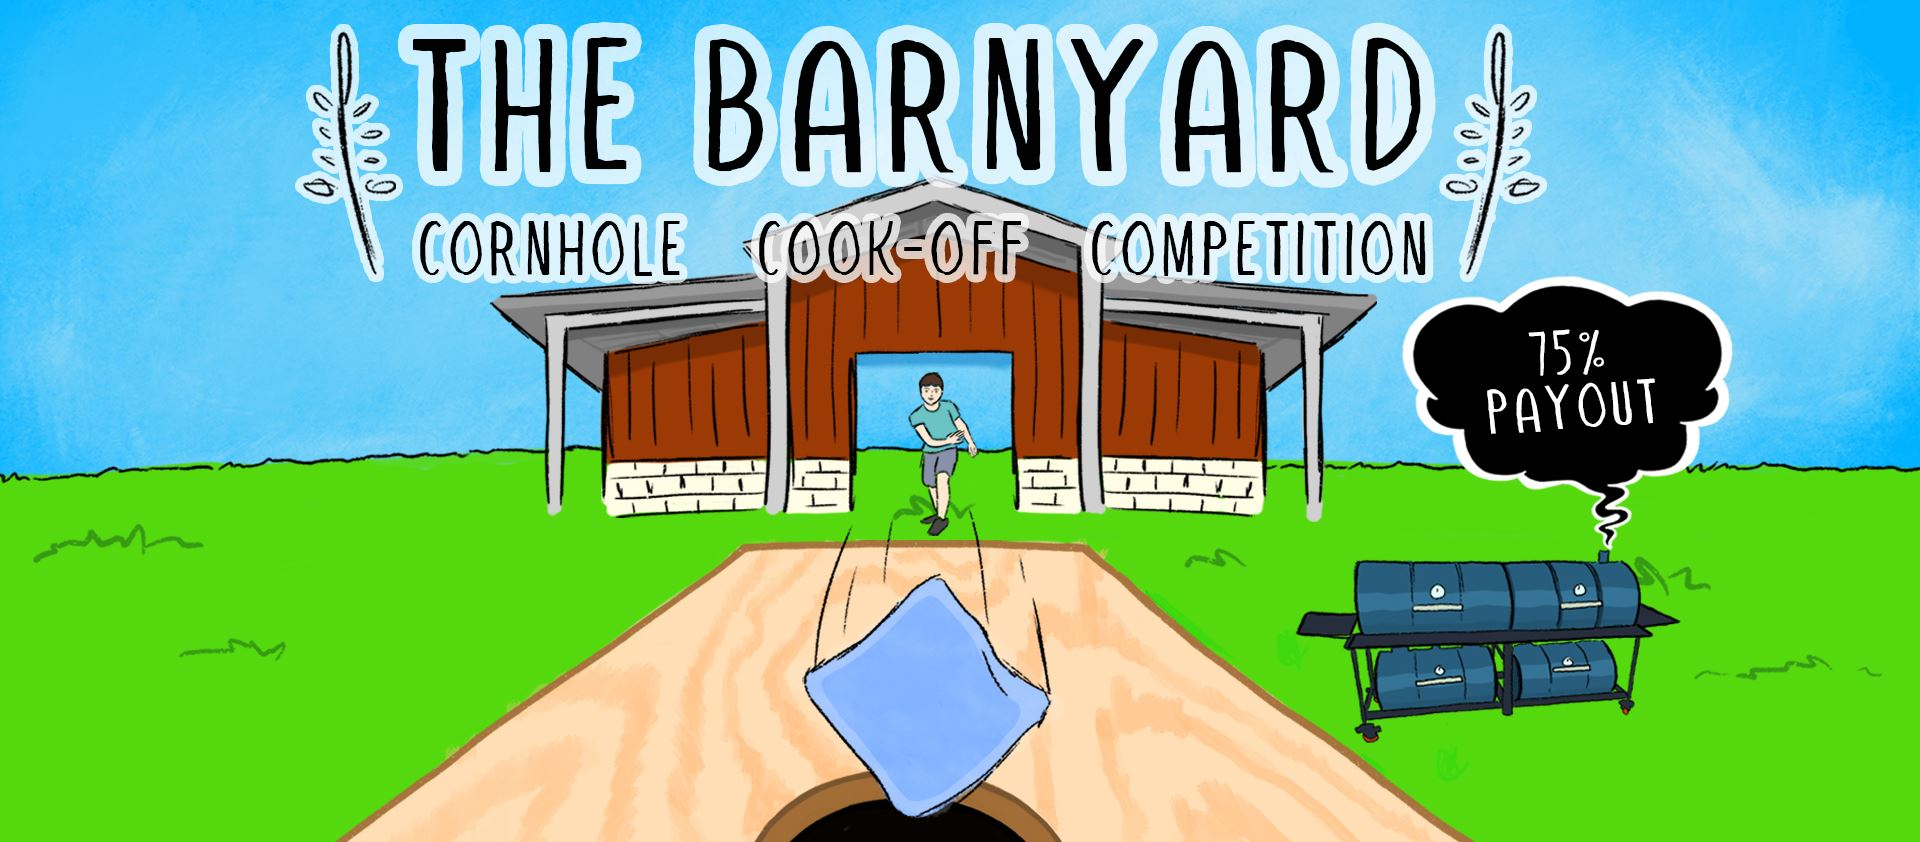 The Barnyard Cornhole Cook-Off Competition 2